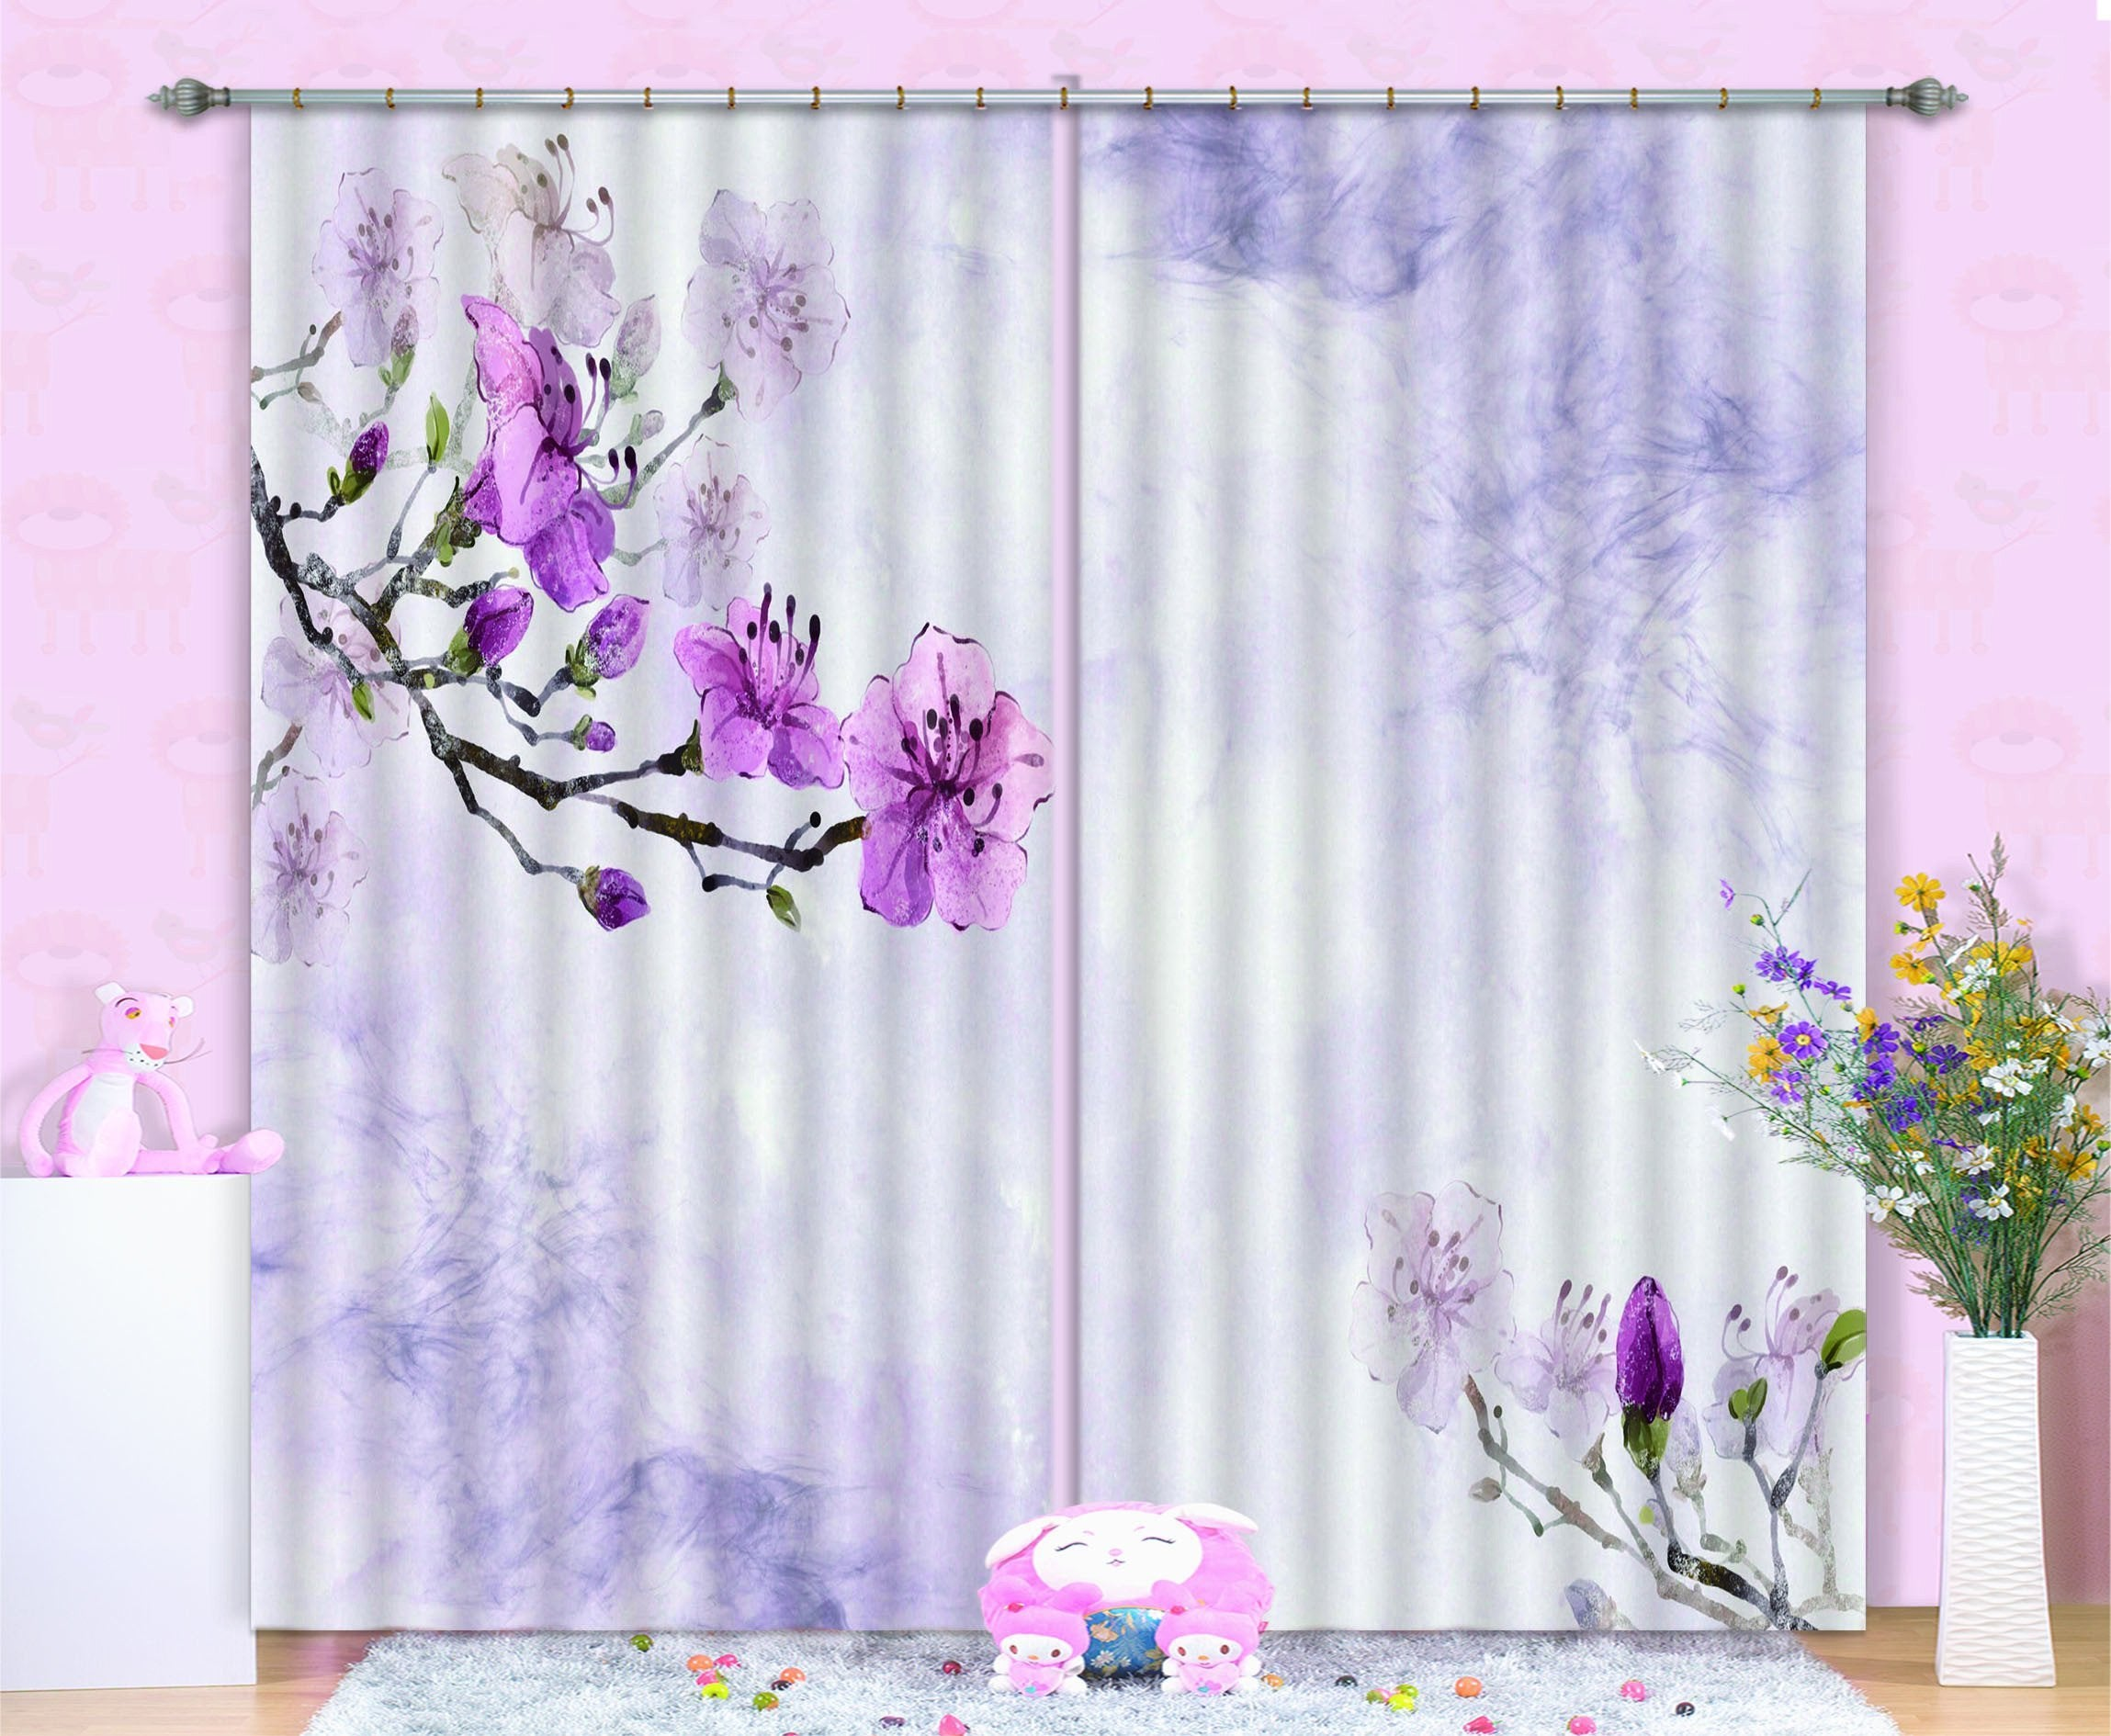 3D Flowers Branches 460 Beach Curtains Drapes Wallpaper AJ Wallpaper